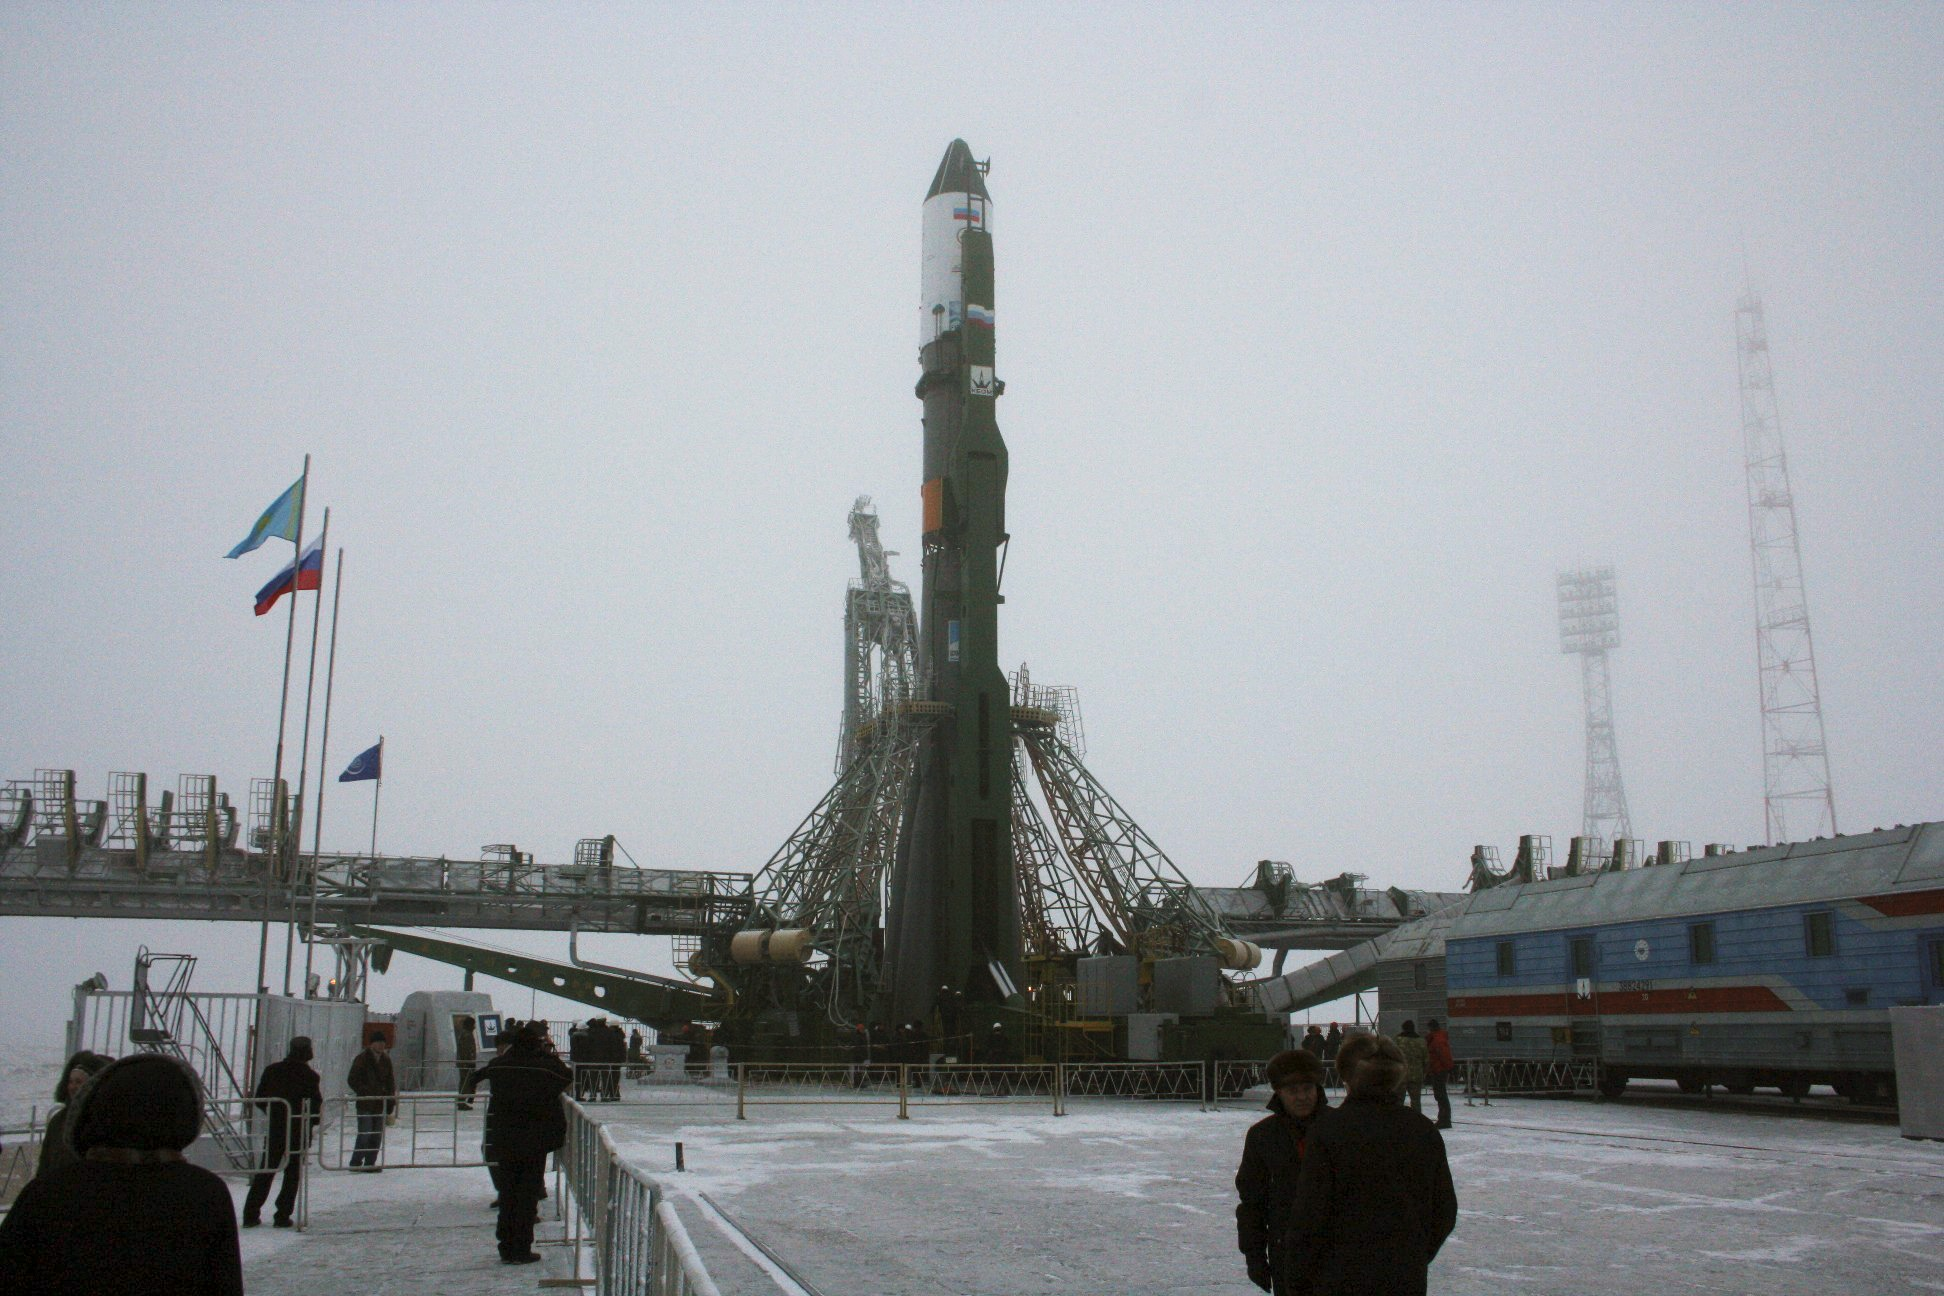 A Progress awaits launch at Baikonur Cosmodrome in Kazakhstan. Photo Credit: NASA